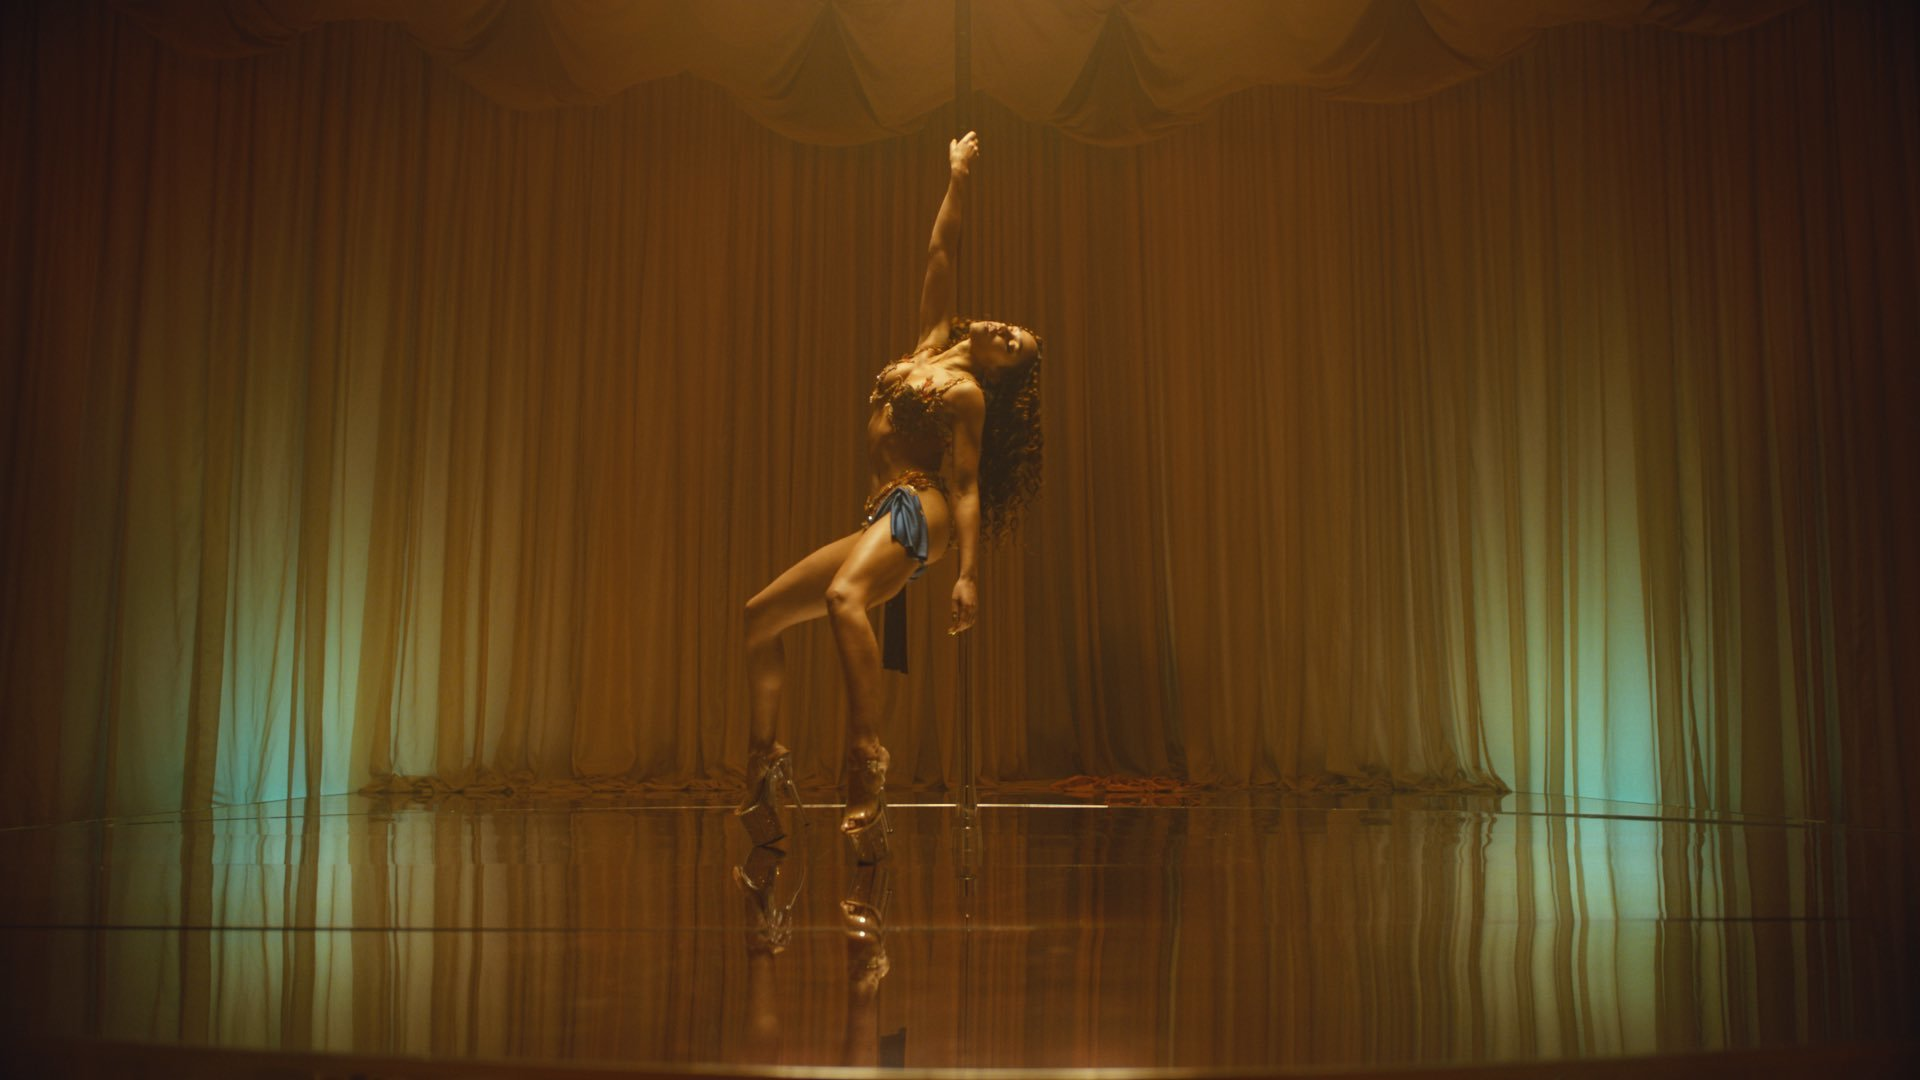 FKA twigs returns with 'Cellophane'